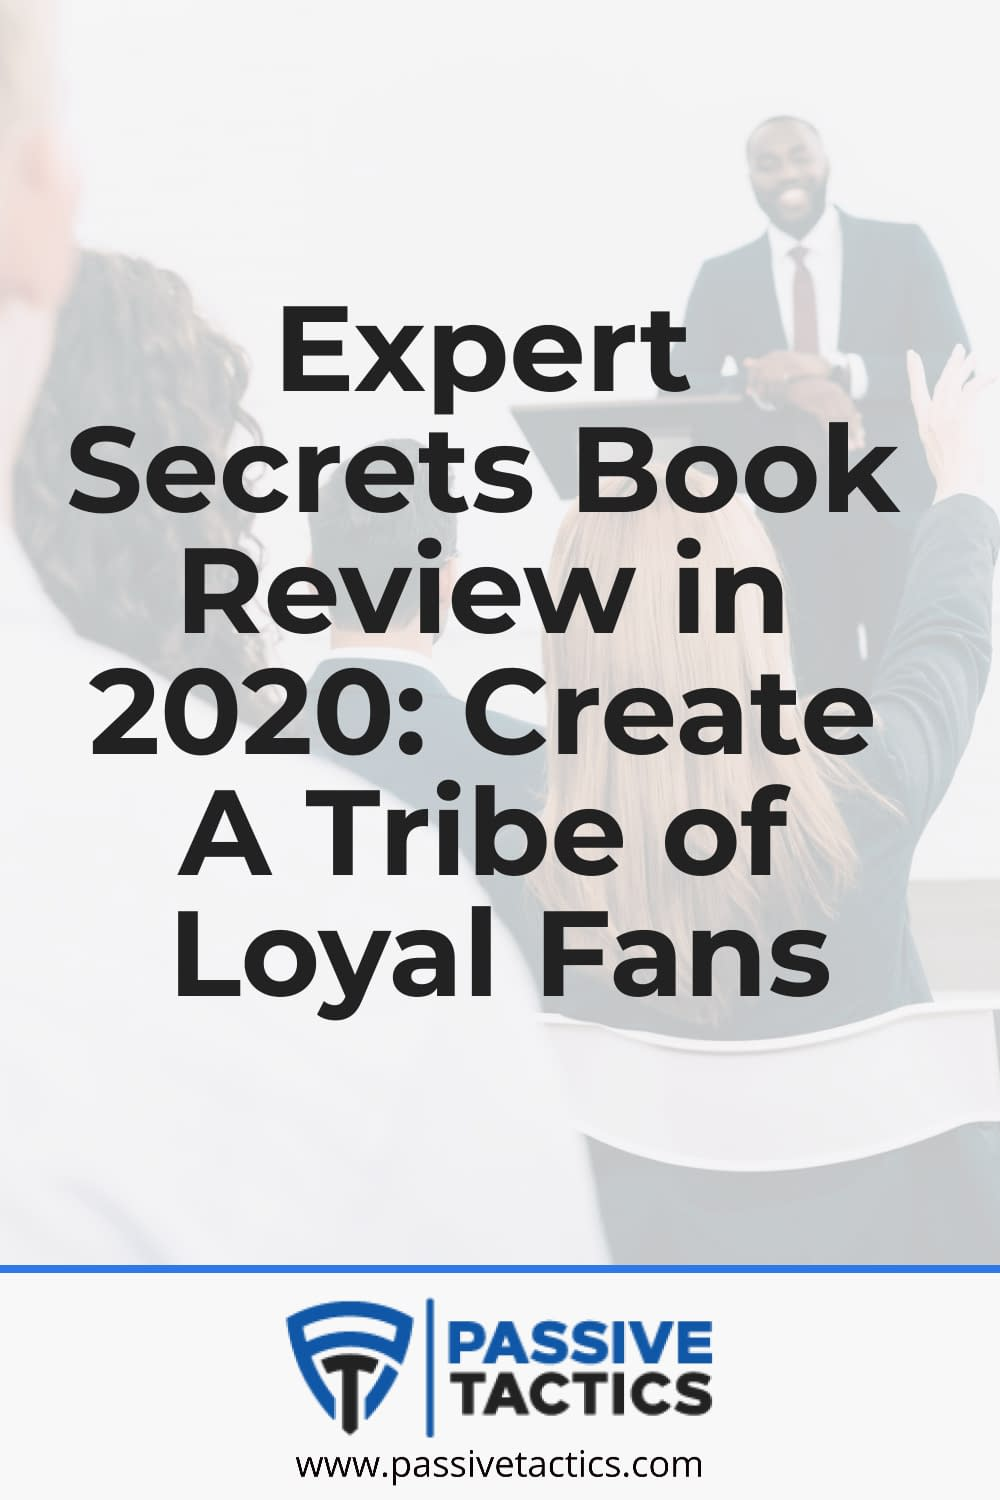 Expert Secrets Book Review in 2020: Create A Tribe of Loyal Fans